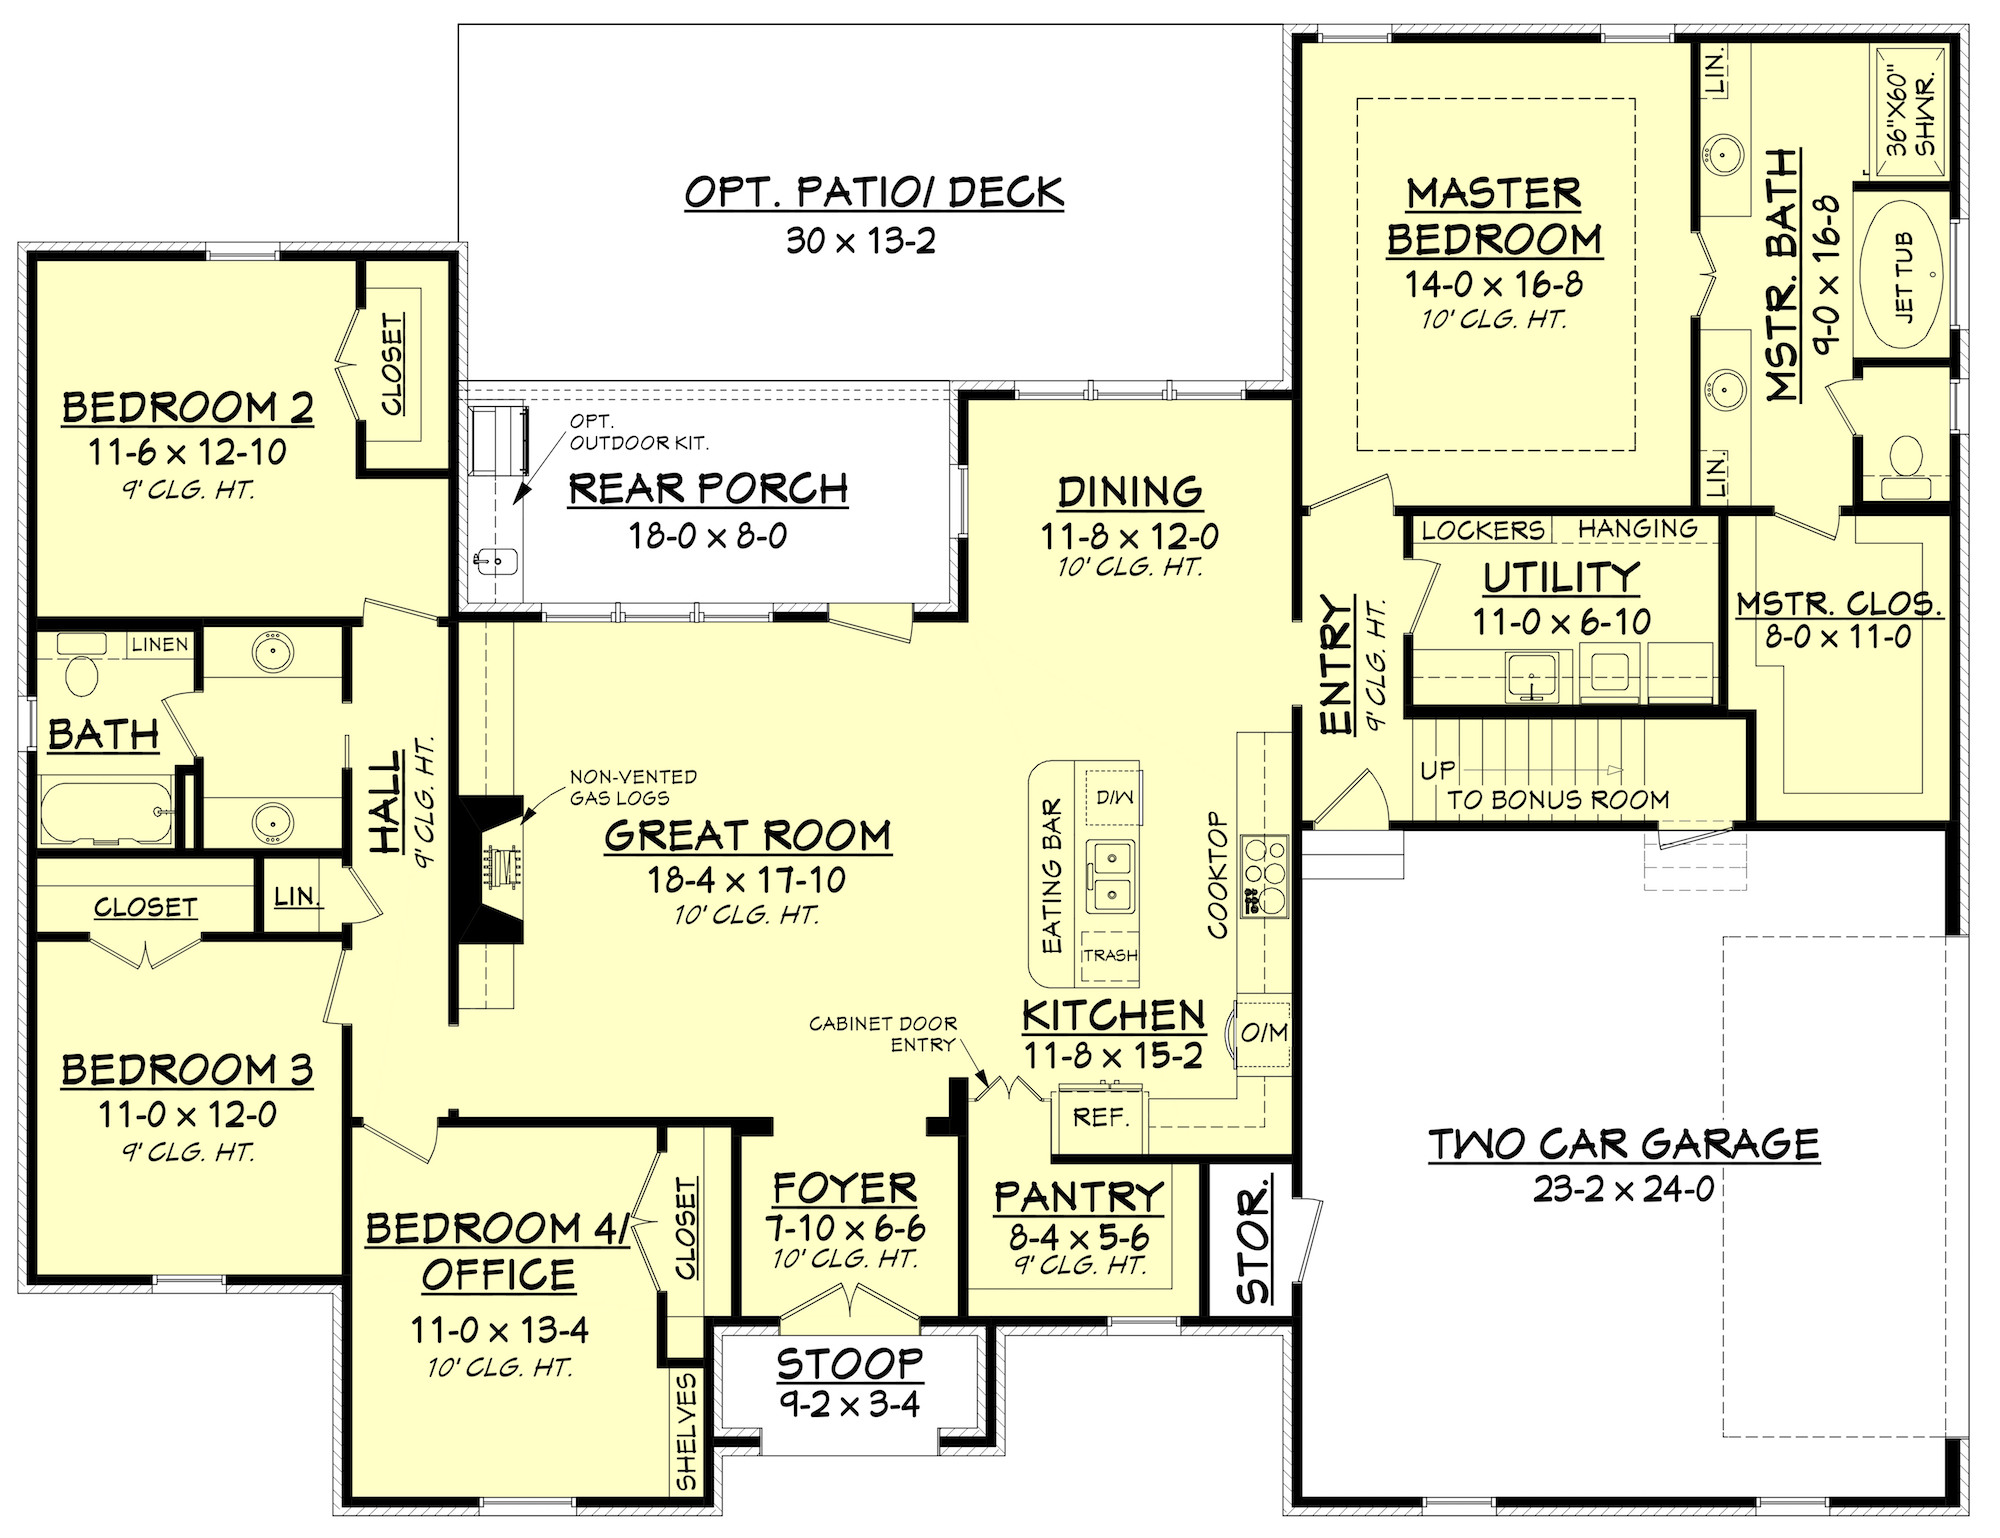 Acadian house plan 142 1154 4 bedrm 2210 sq ft home plan for Eight bedroom house plans